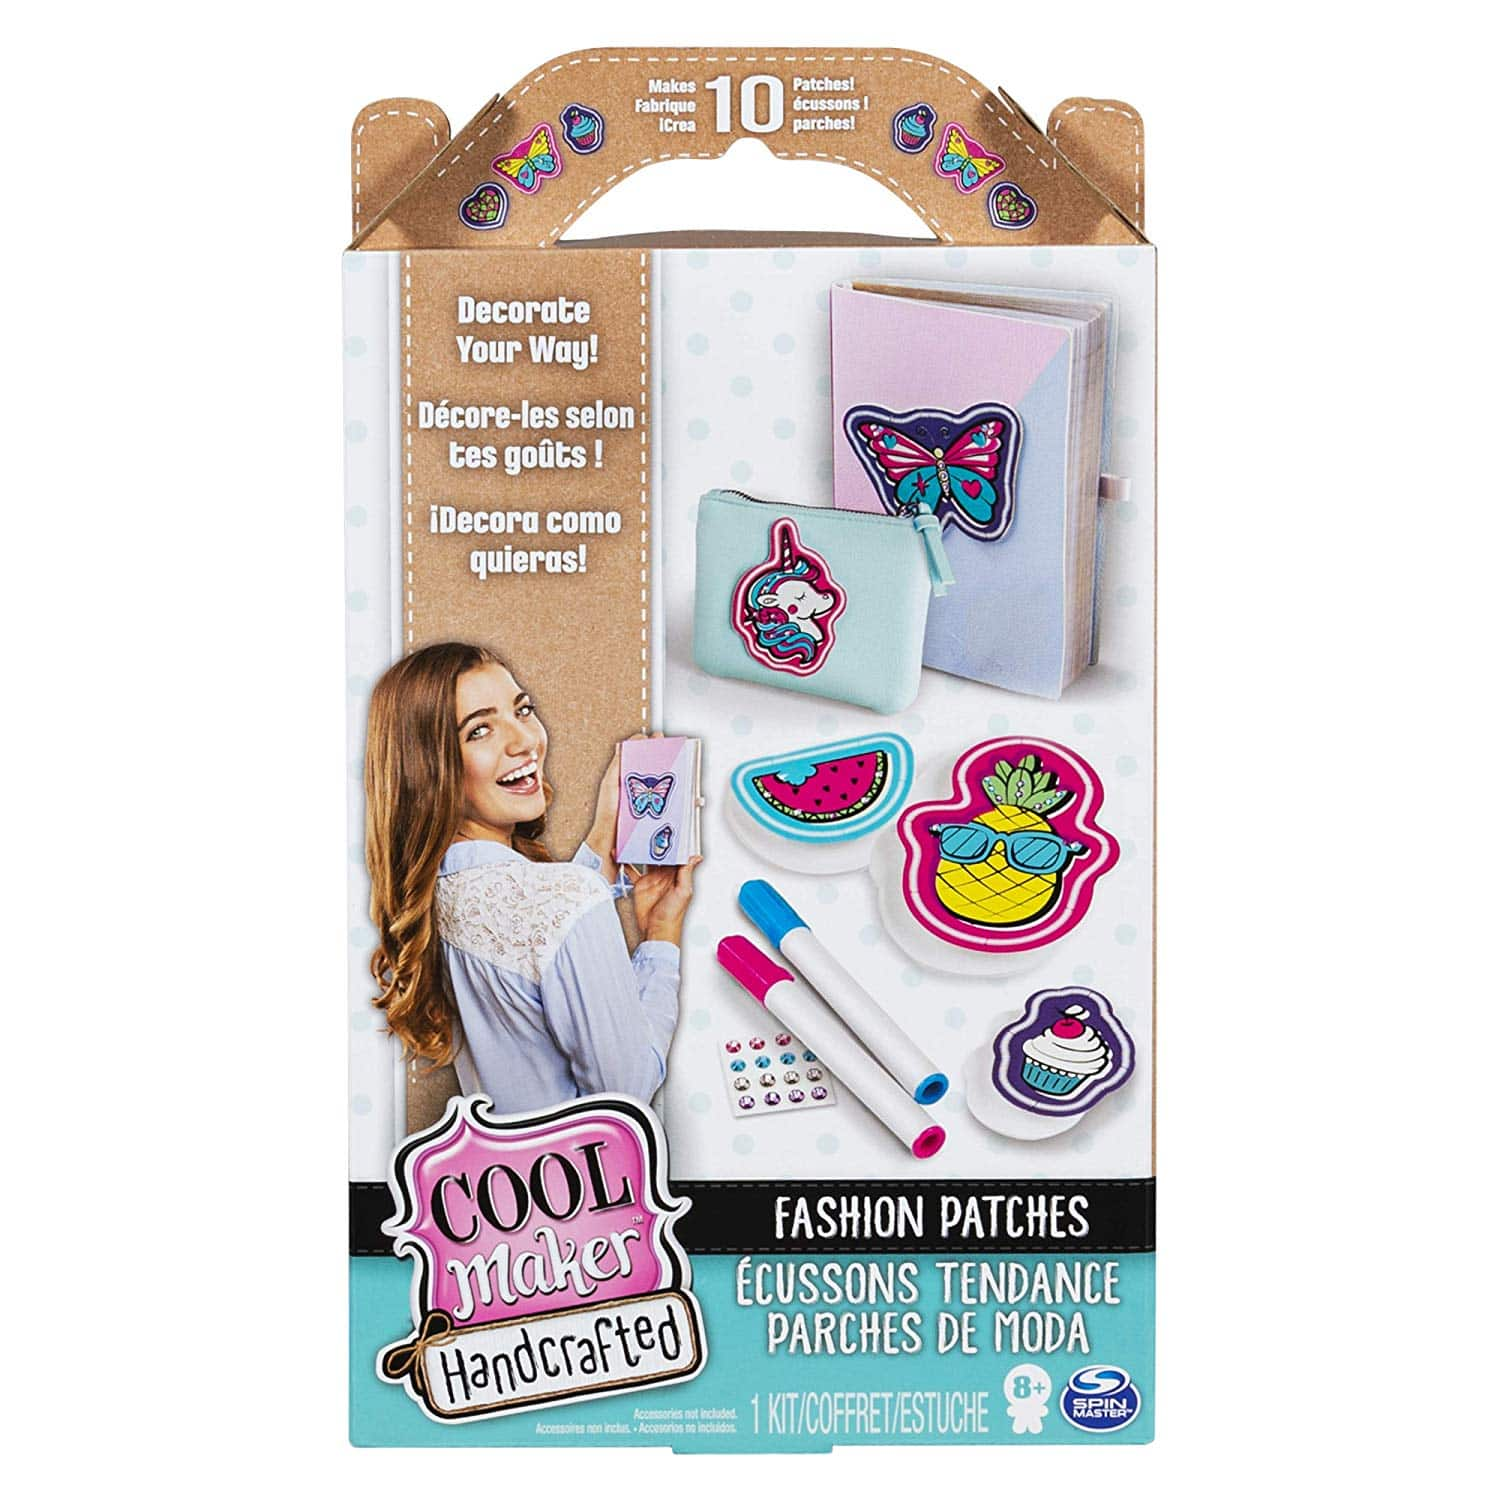 10-Ct. (1 Pkg.) Cool Maker, Handcrafted Fashion Patches Activity Kit $2.81 - Amazon